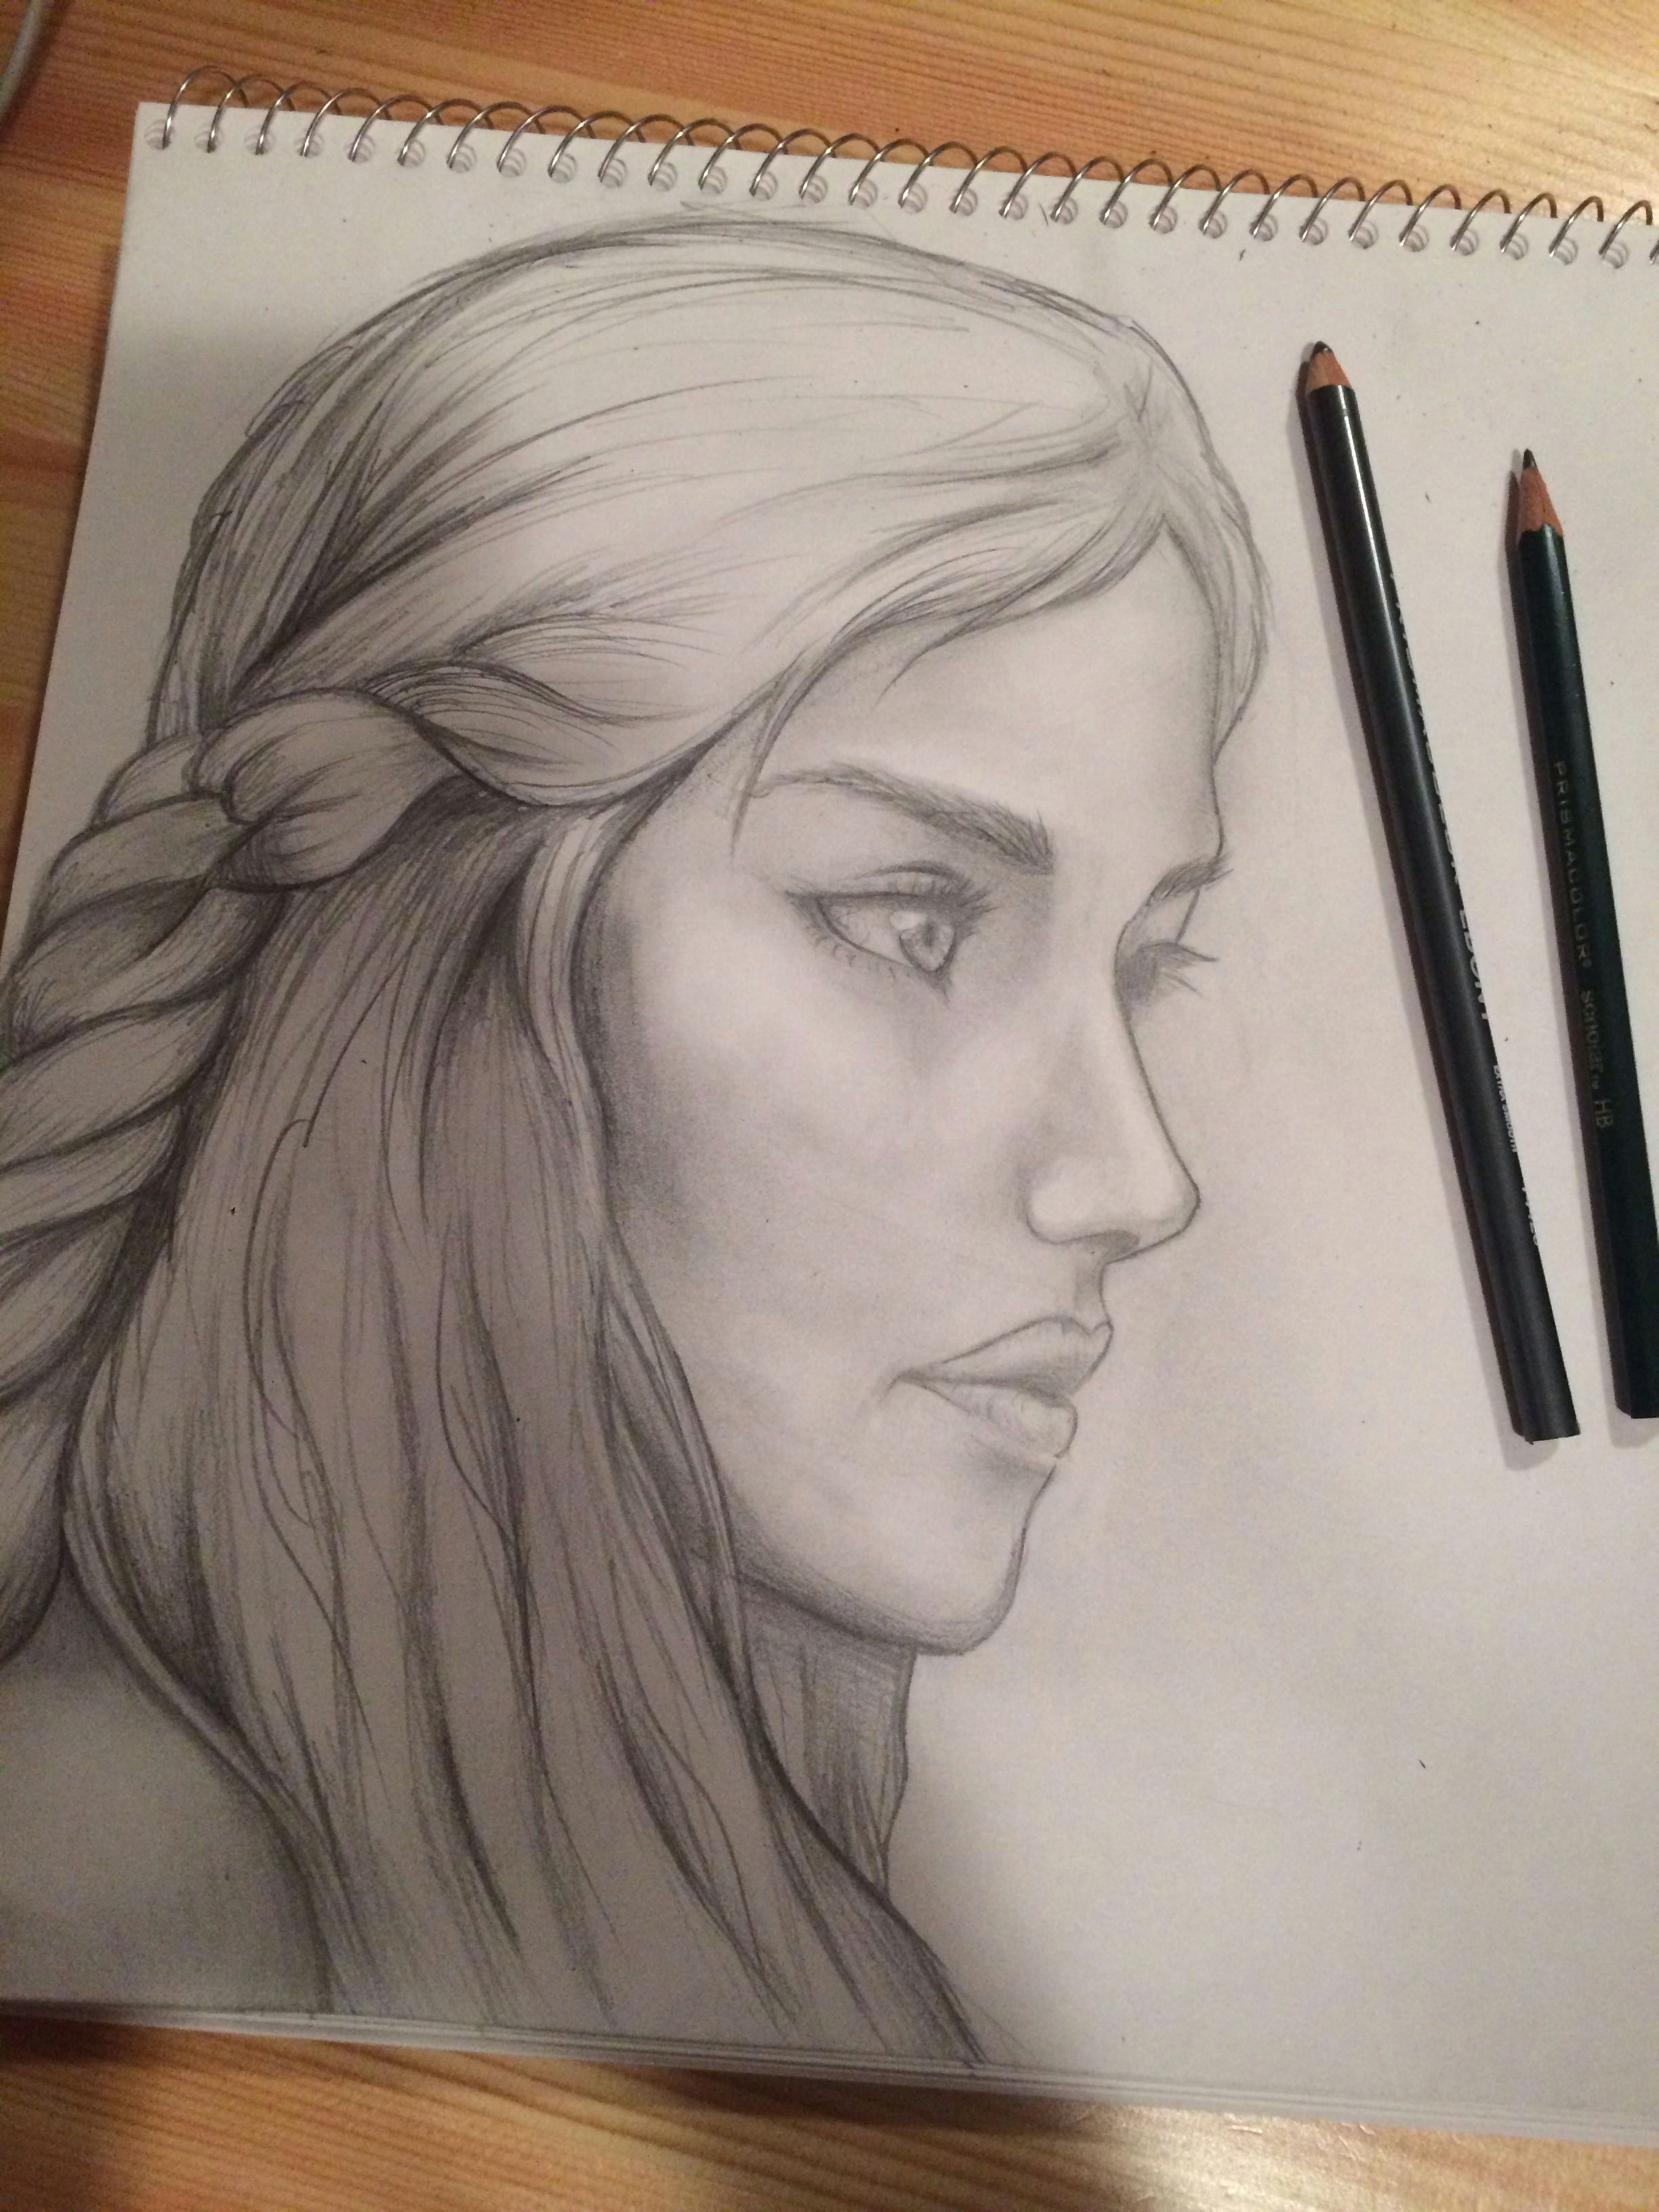 almost done my pencil portrait of the dragon queen from game of thrones